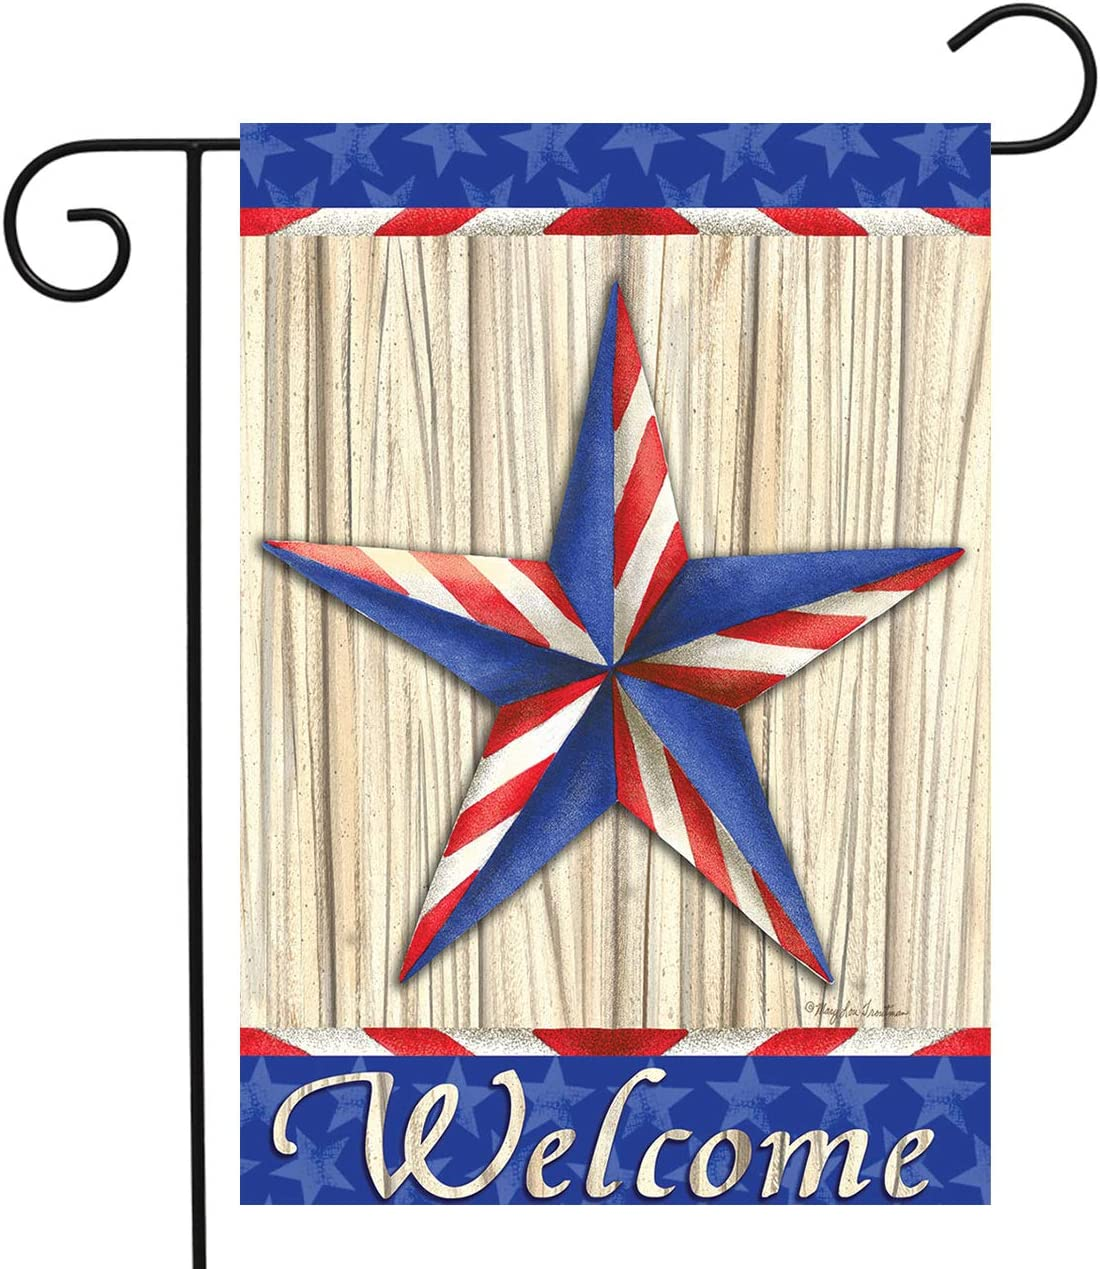 Briarwood Lane Patriotic Barnstar Primitive Garden Flag Welcome Red White and Blue 12.5